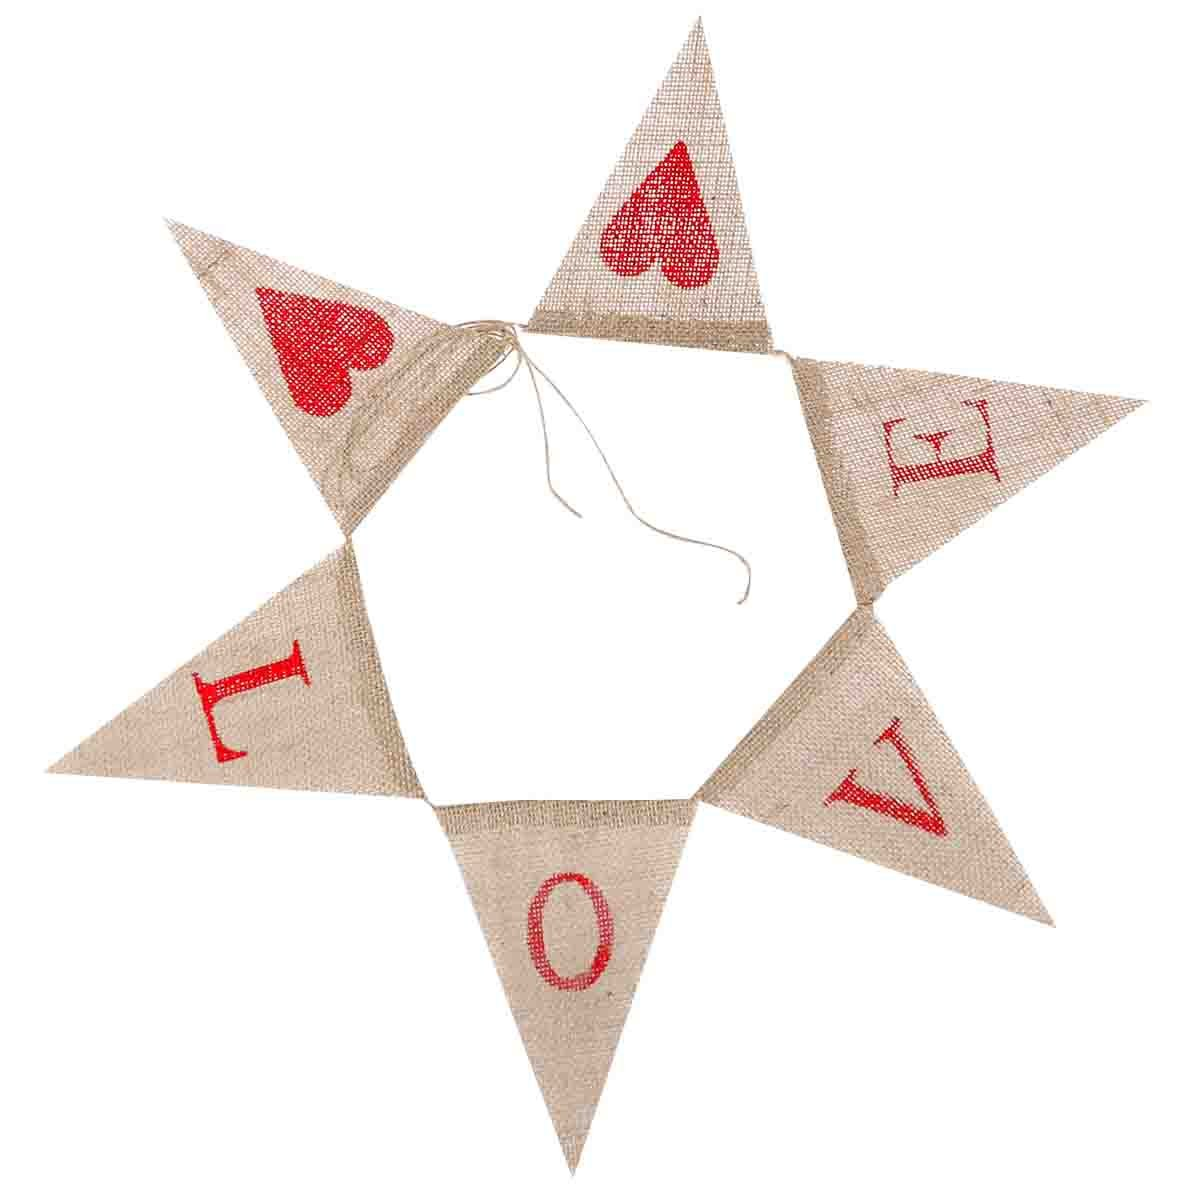 Tinksky LOVE Letters and Hearts Valentines Day Bunting Banners Rustic Jute Burlap Pennant Flags Vintage Wedding Garland